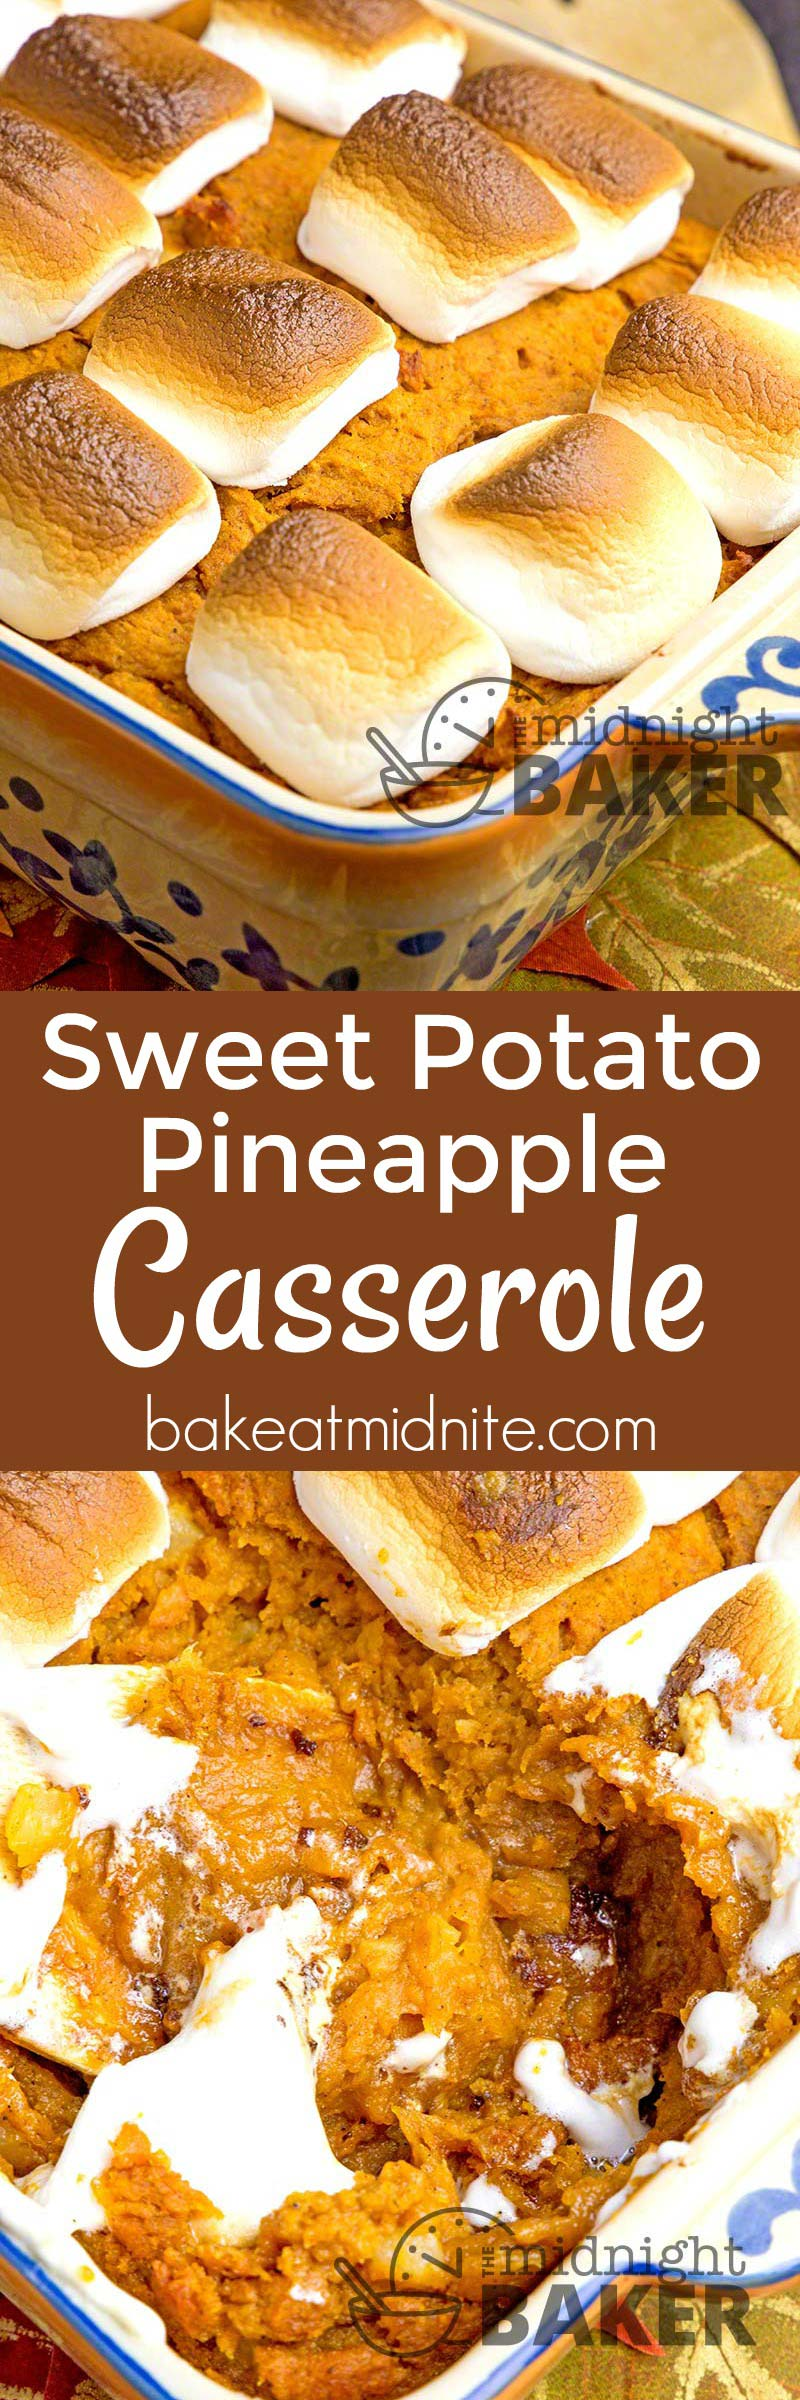 Yummy sweet potatoes and tangy pineapple make this casserole a taste sensation!